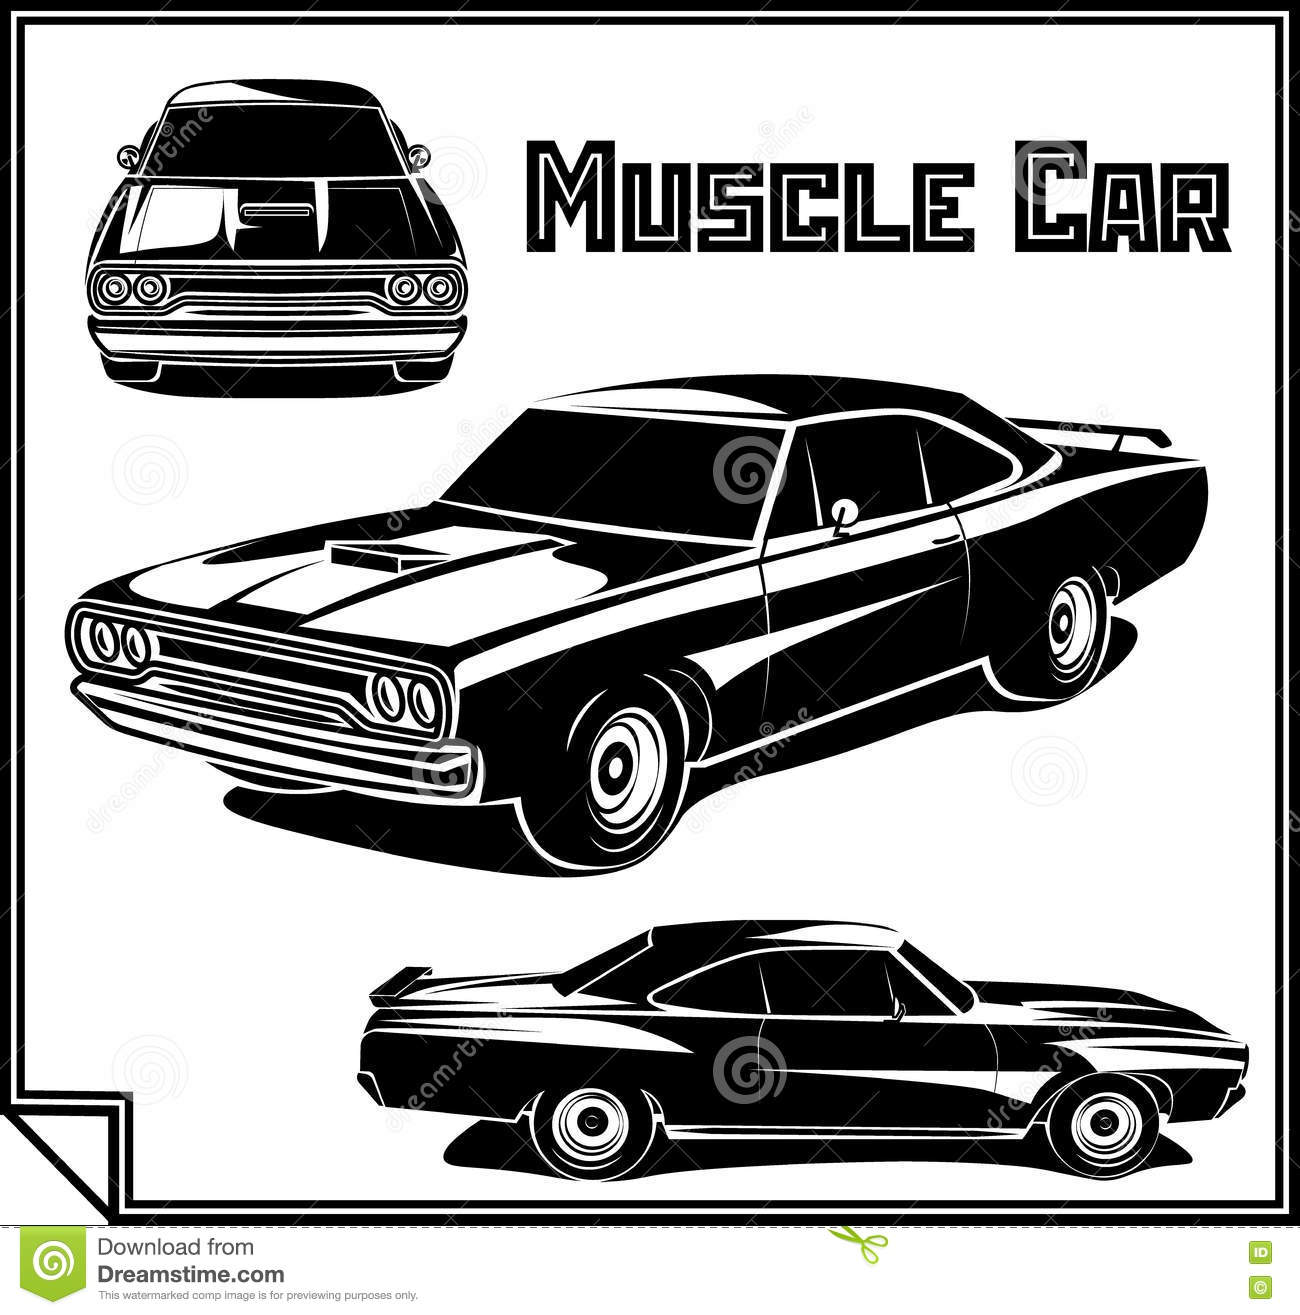 Muscle Car Vector Poster Monochrome Stock Vector Illustration Of